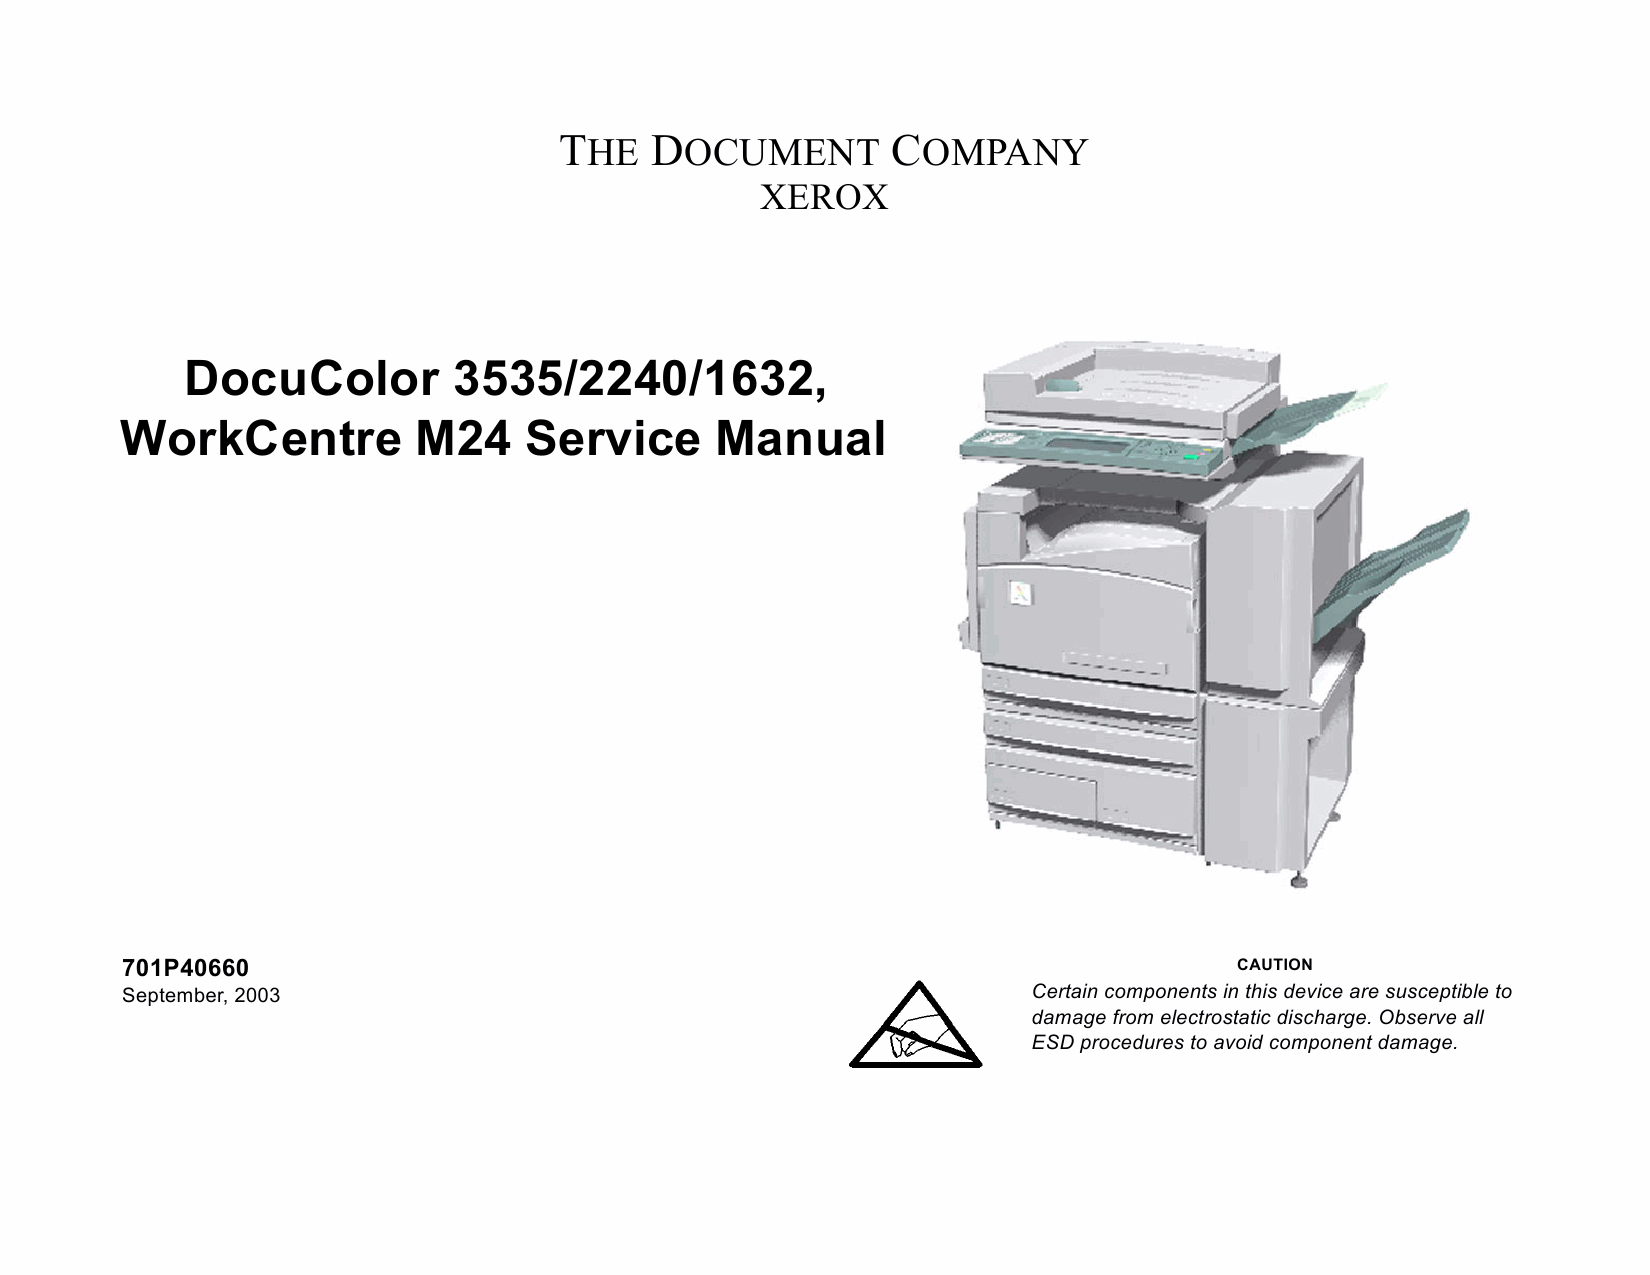 Xerox WorkCentre M24 DocuColor-3535 2240 1632 Parts List and Service Manual-1